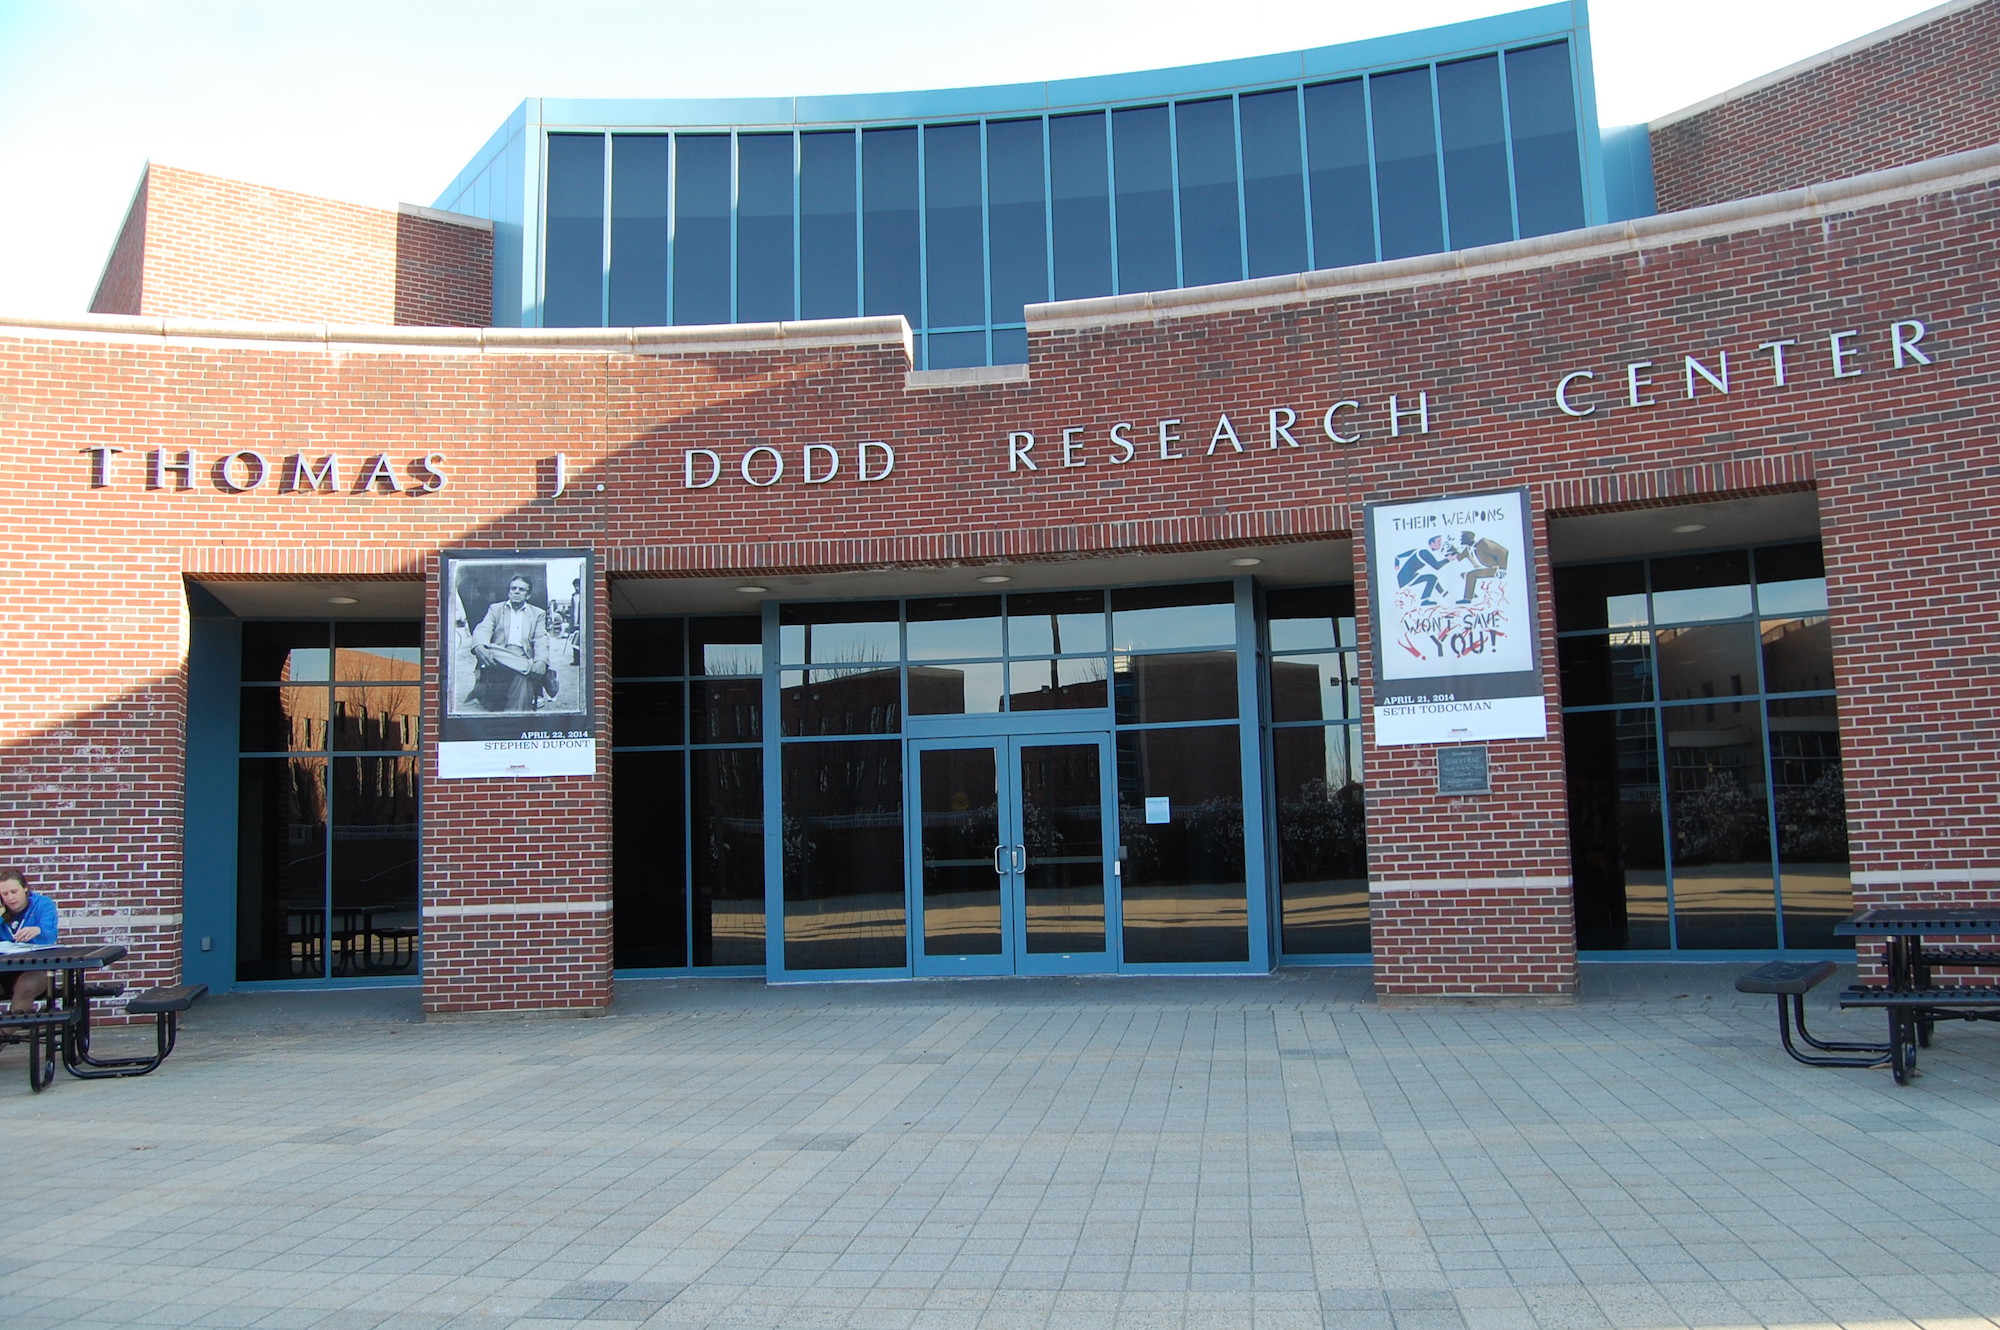 Daily Campus archives can now be accessed digitally at the Dodd Center in the University of Connecticut's Archives and Special Collections.(File photo/The Daily Campus)